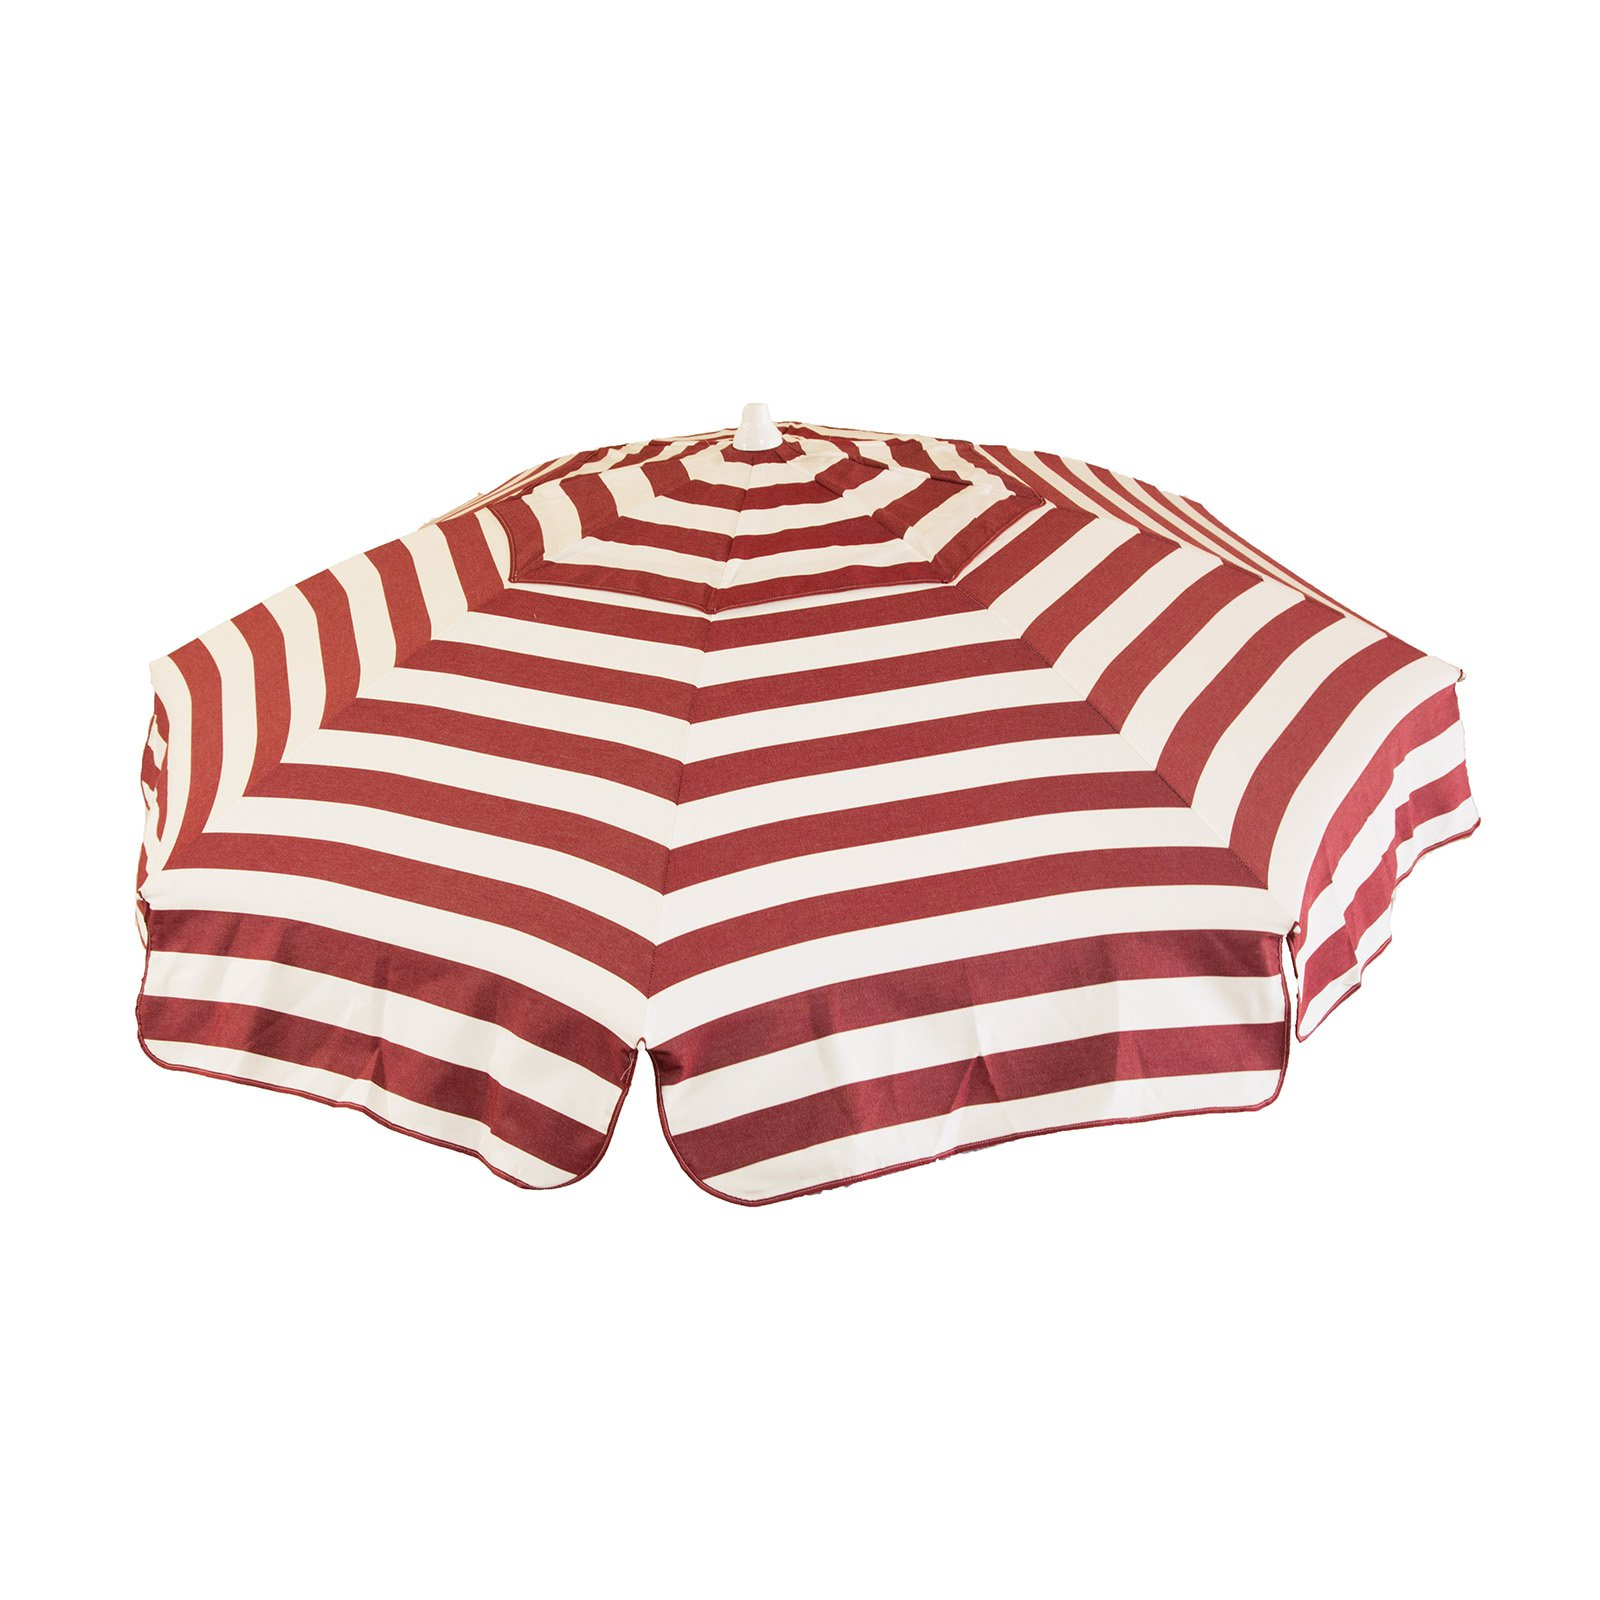 DestinationGear Italian 6' Umbrella Acrylic Stripes Cabernet and White Beach Pole